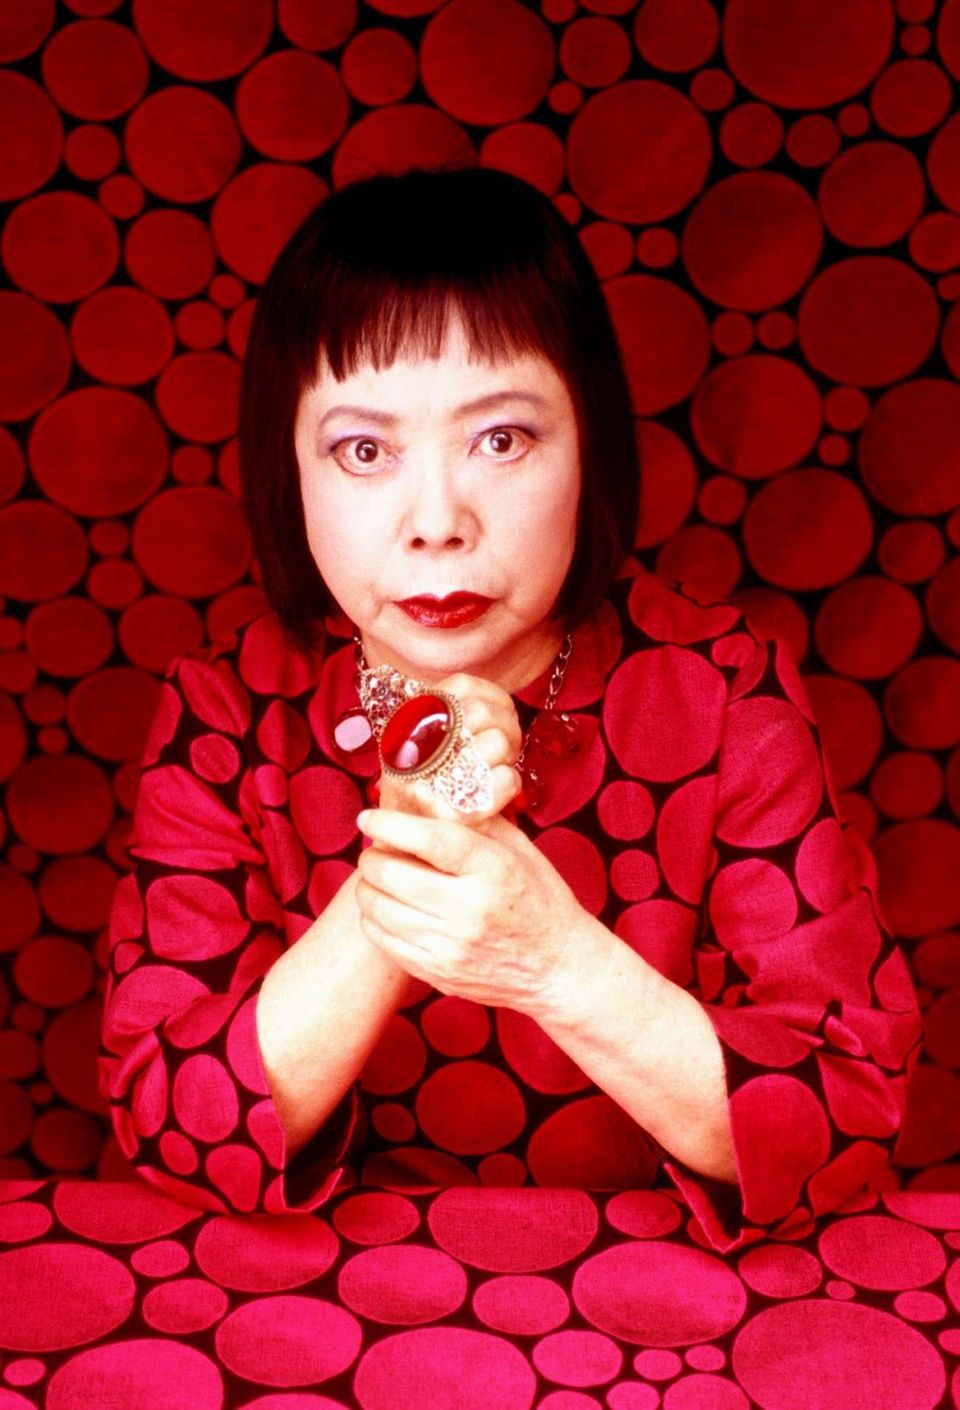 Selfie Obliteration How Yayoi Kusama Invented The Photo